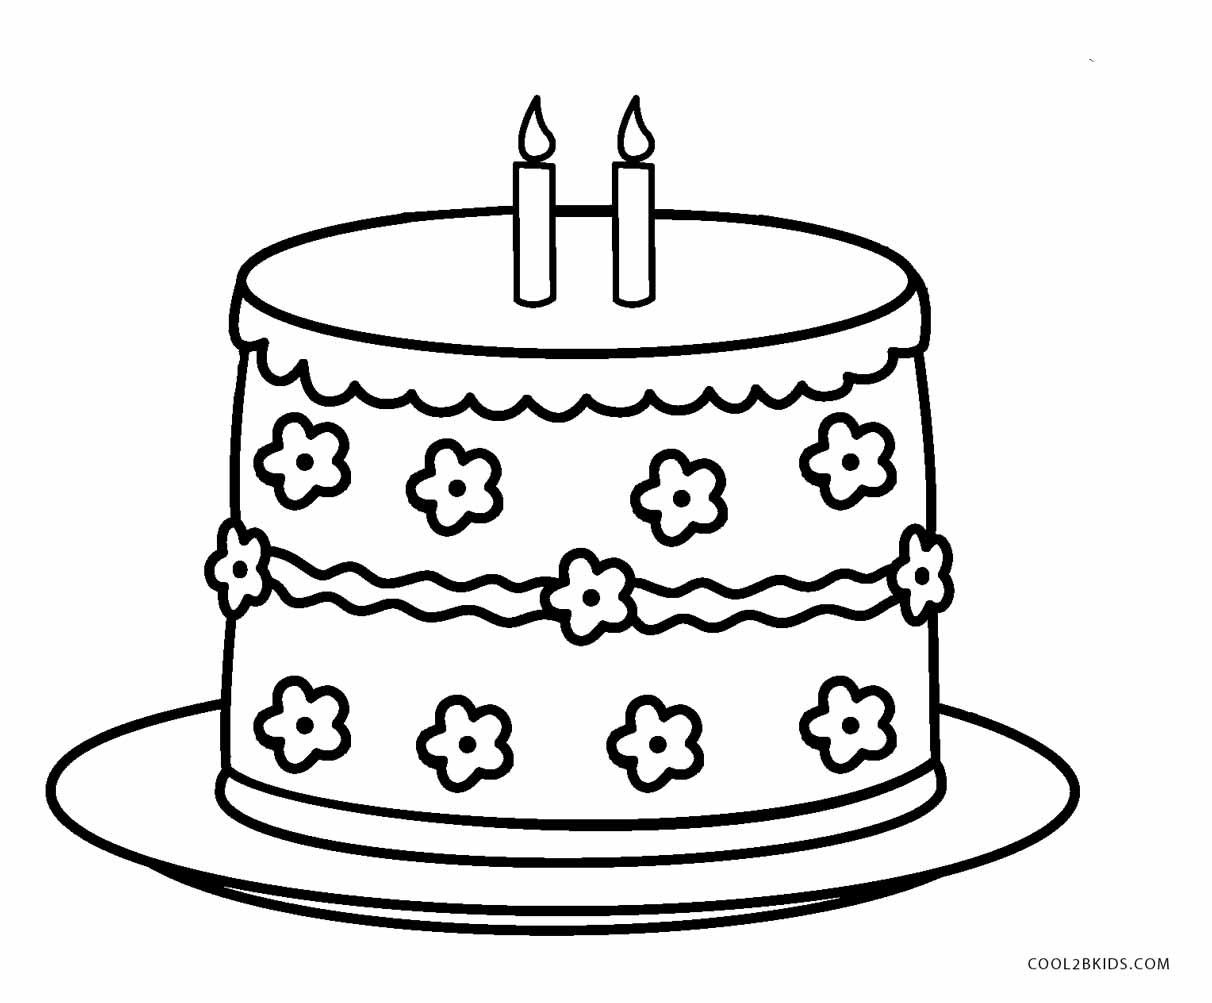 Birthday Cake Coloring In Image Inspiration Of Cake And